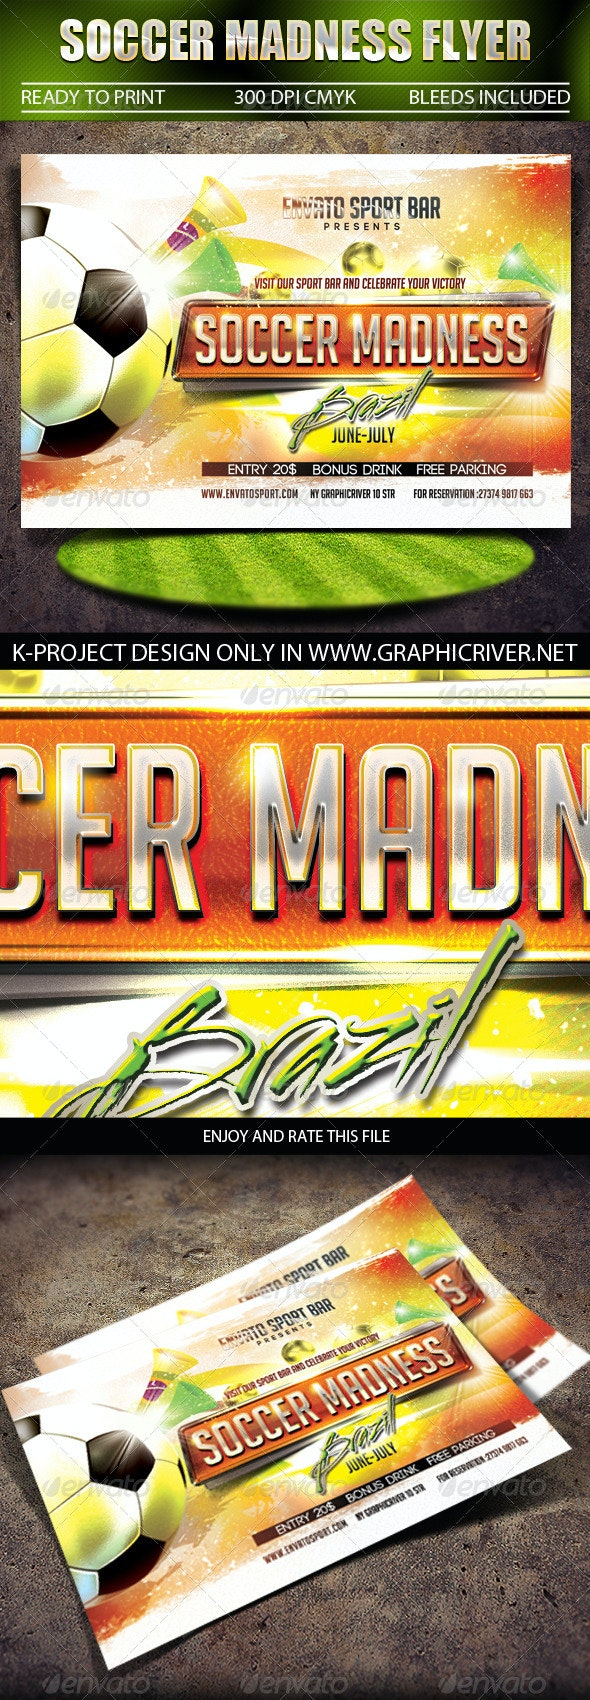 Soccer Madness Flyer - Sports Events